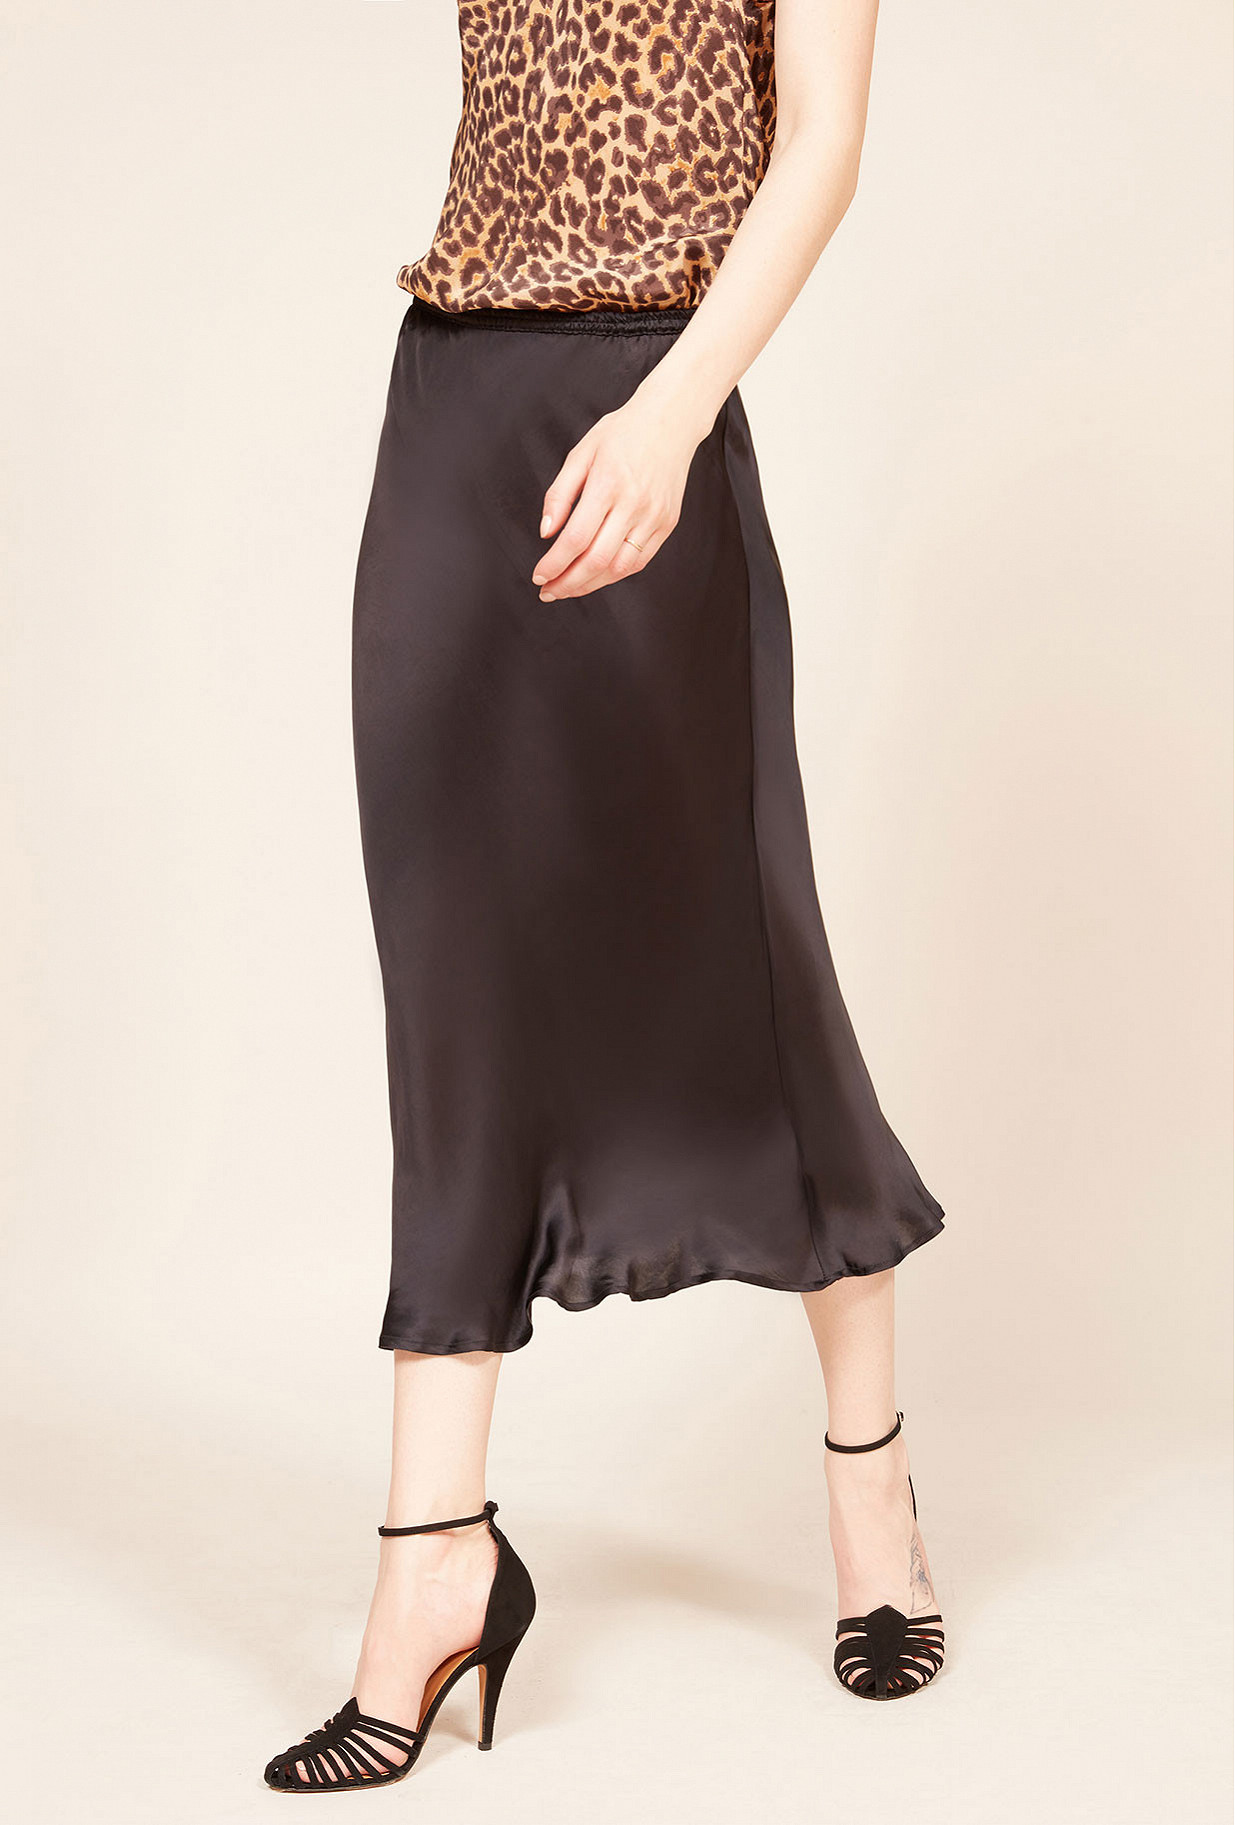 Paris clothes store Skirt  Lima french designer fashion Paris